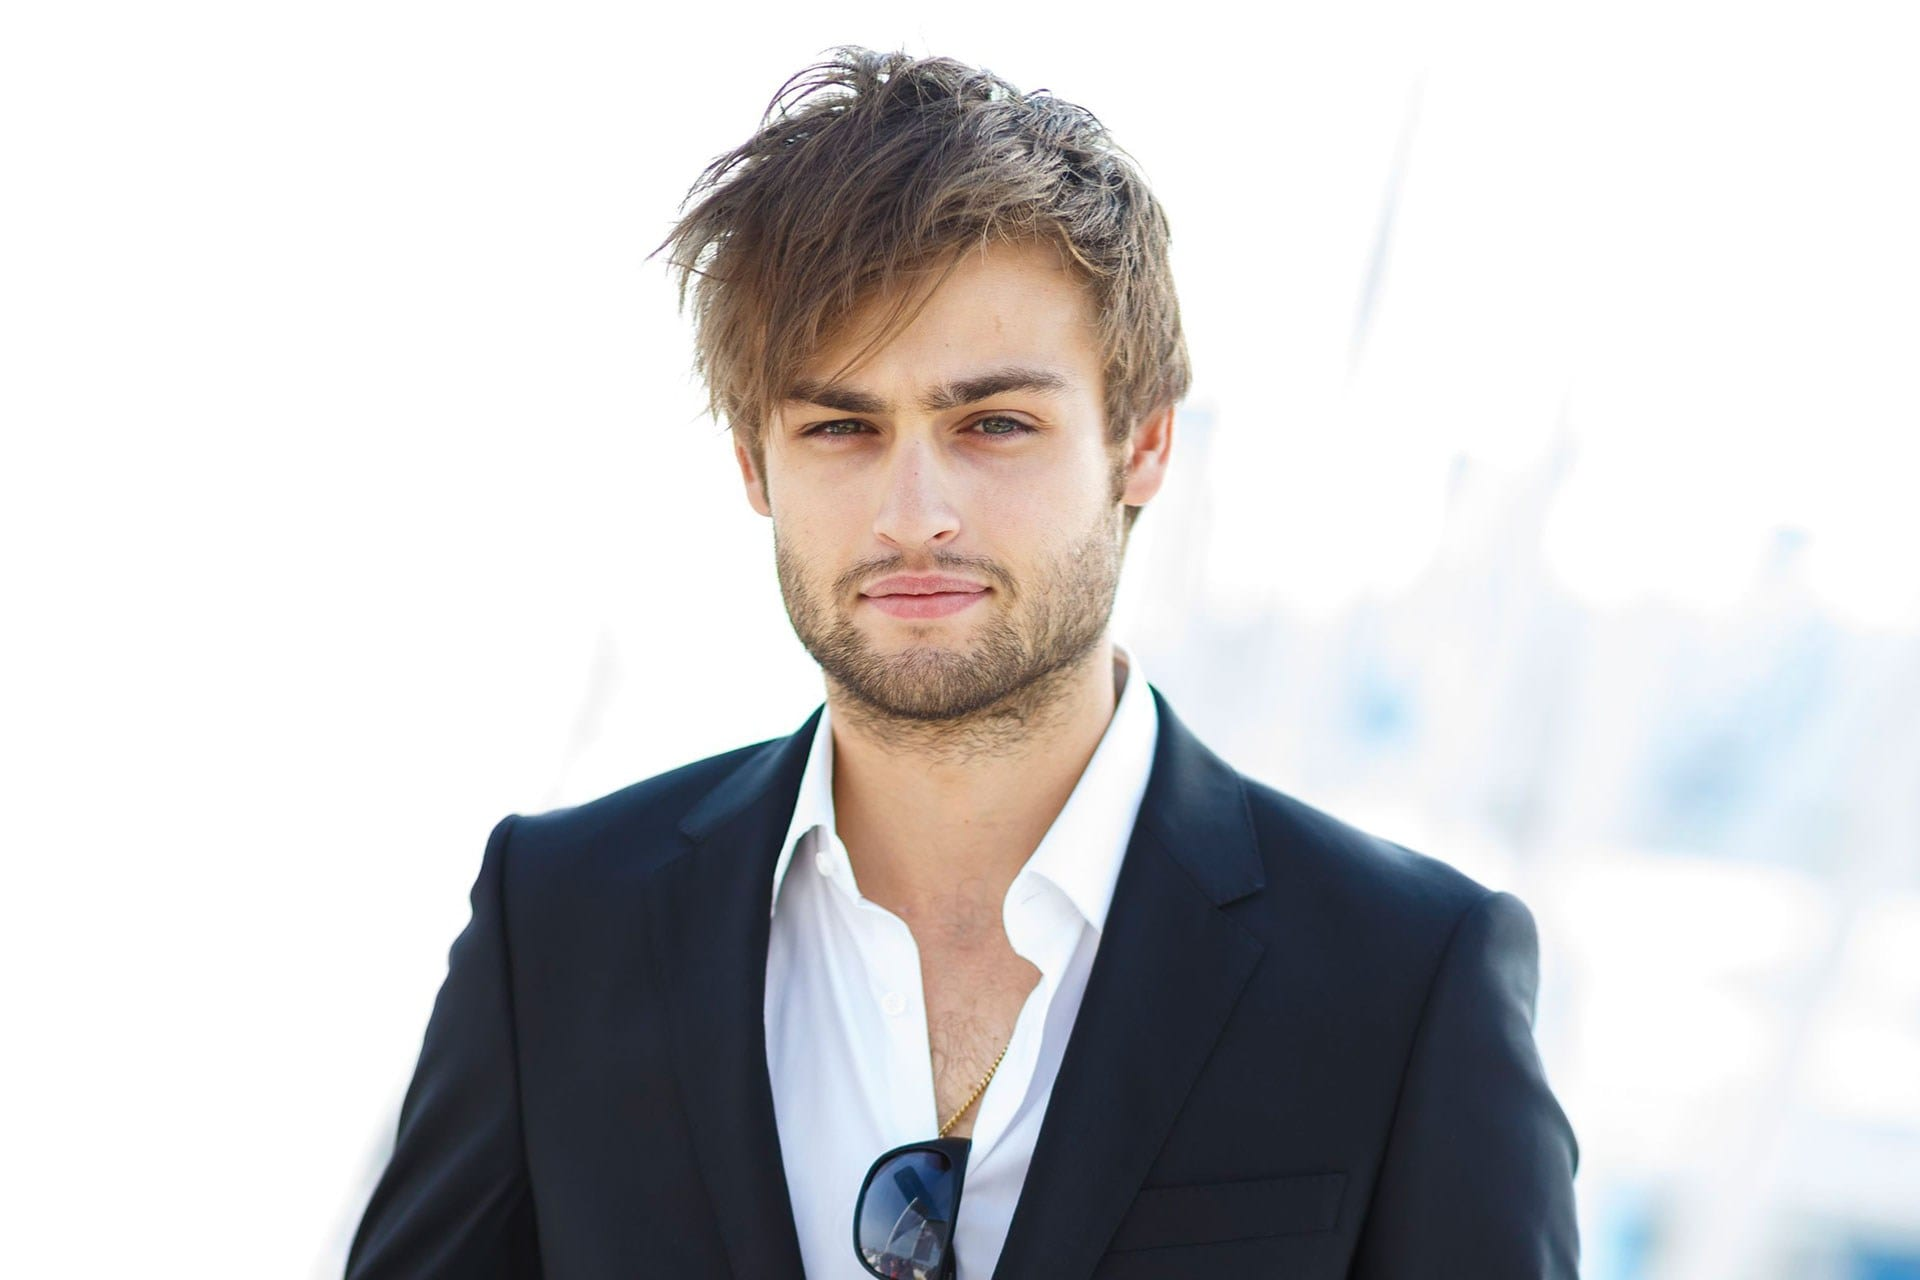 1920x1280 - Douglas Booth Wallpapers 22